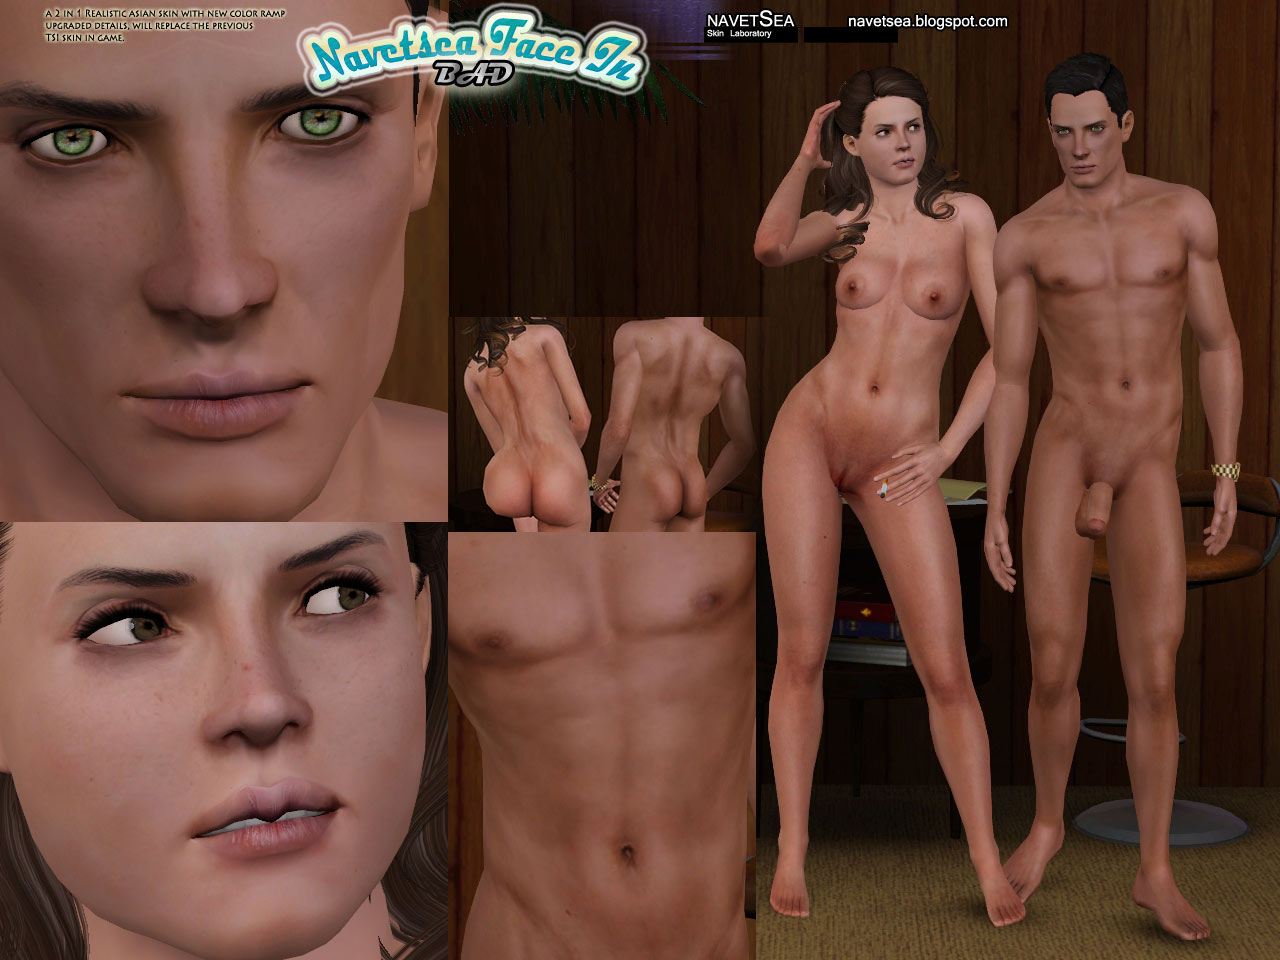 Super nude mod the sims hentai scenes